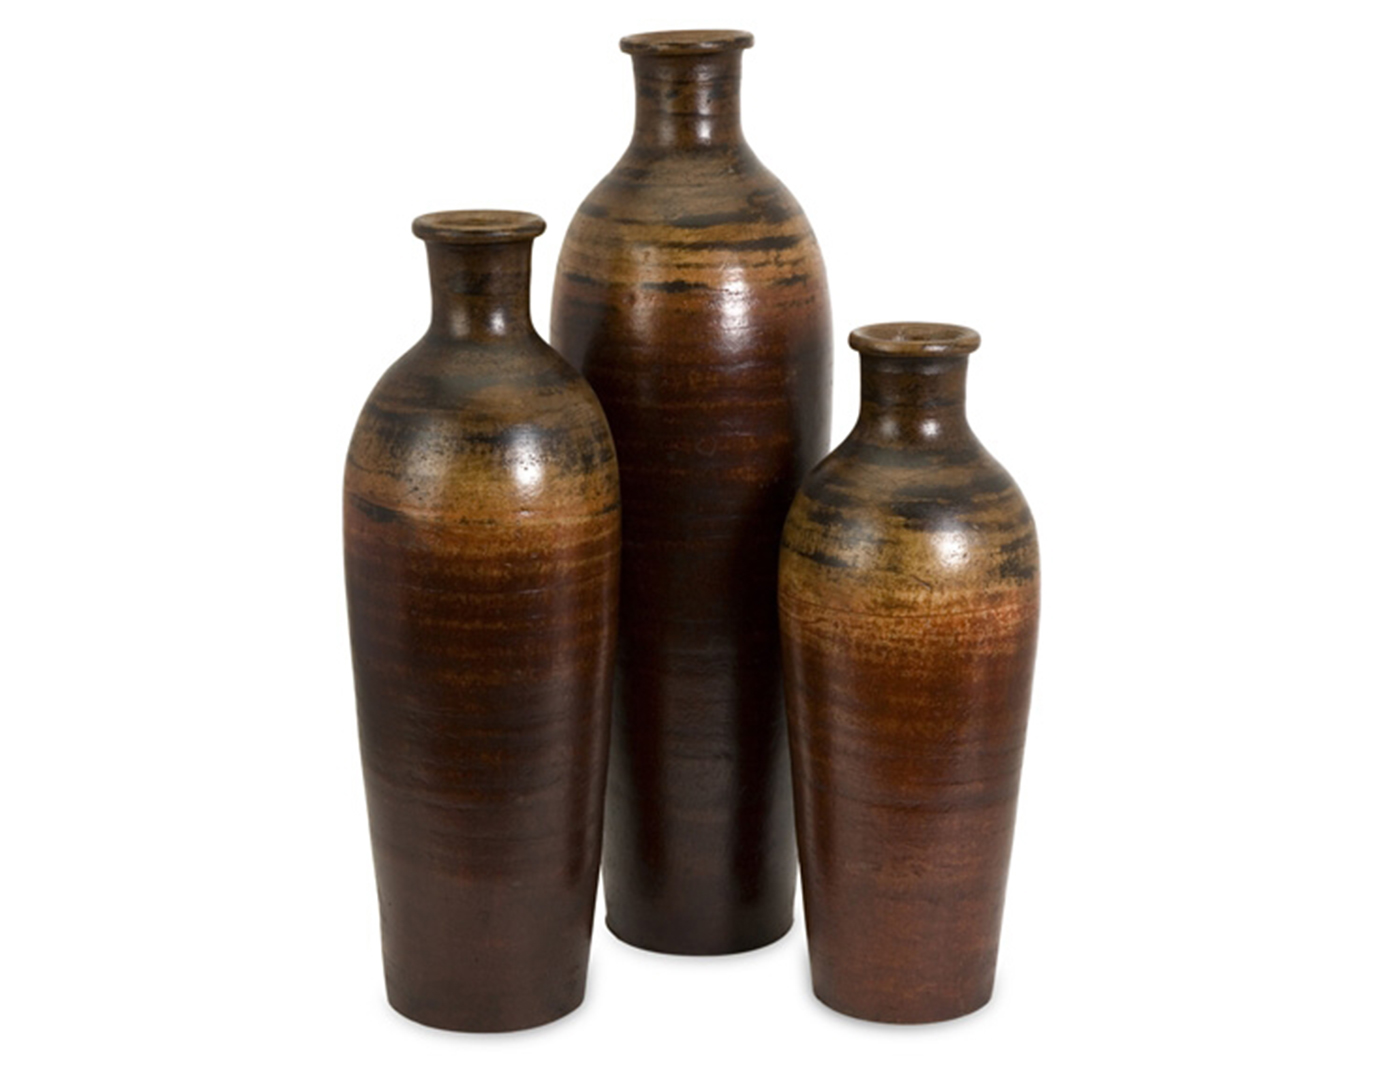 "Set of 3 Fired Clay Benito Vases 7-8""X19/23/27""H"